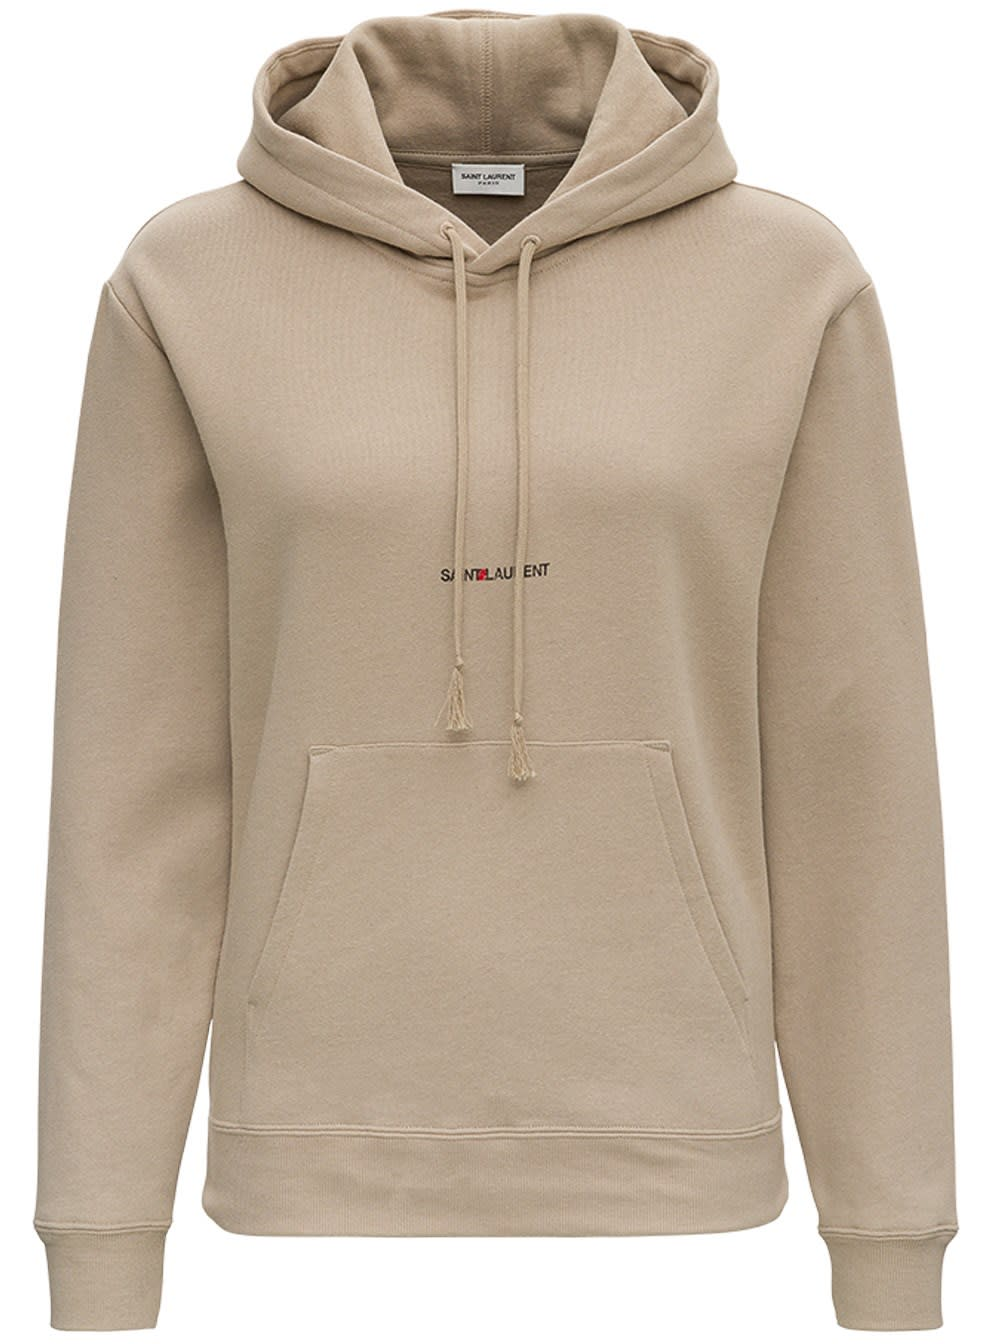 Saint Laurent Beige Jersey Hoodie With Logo Print